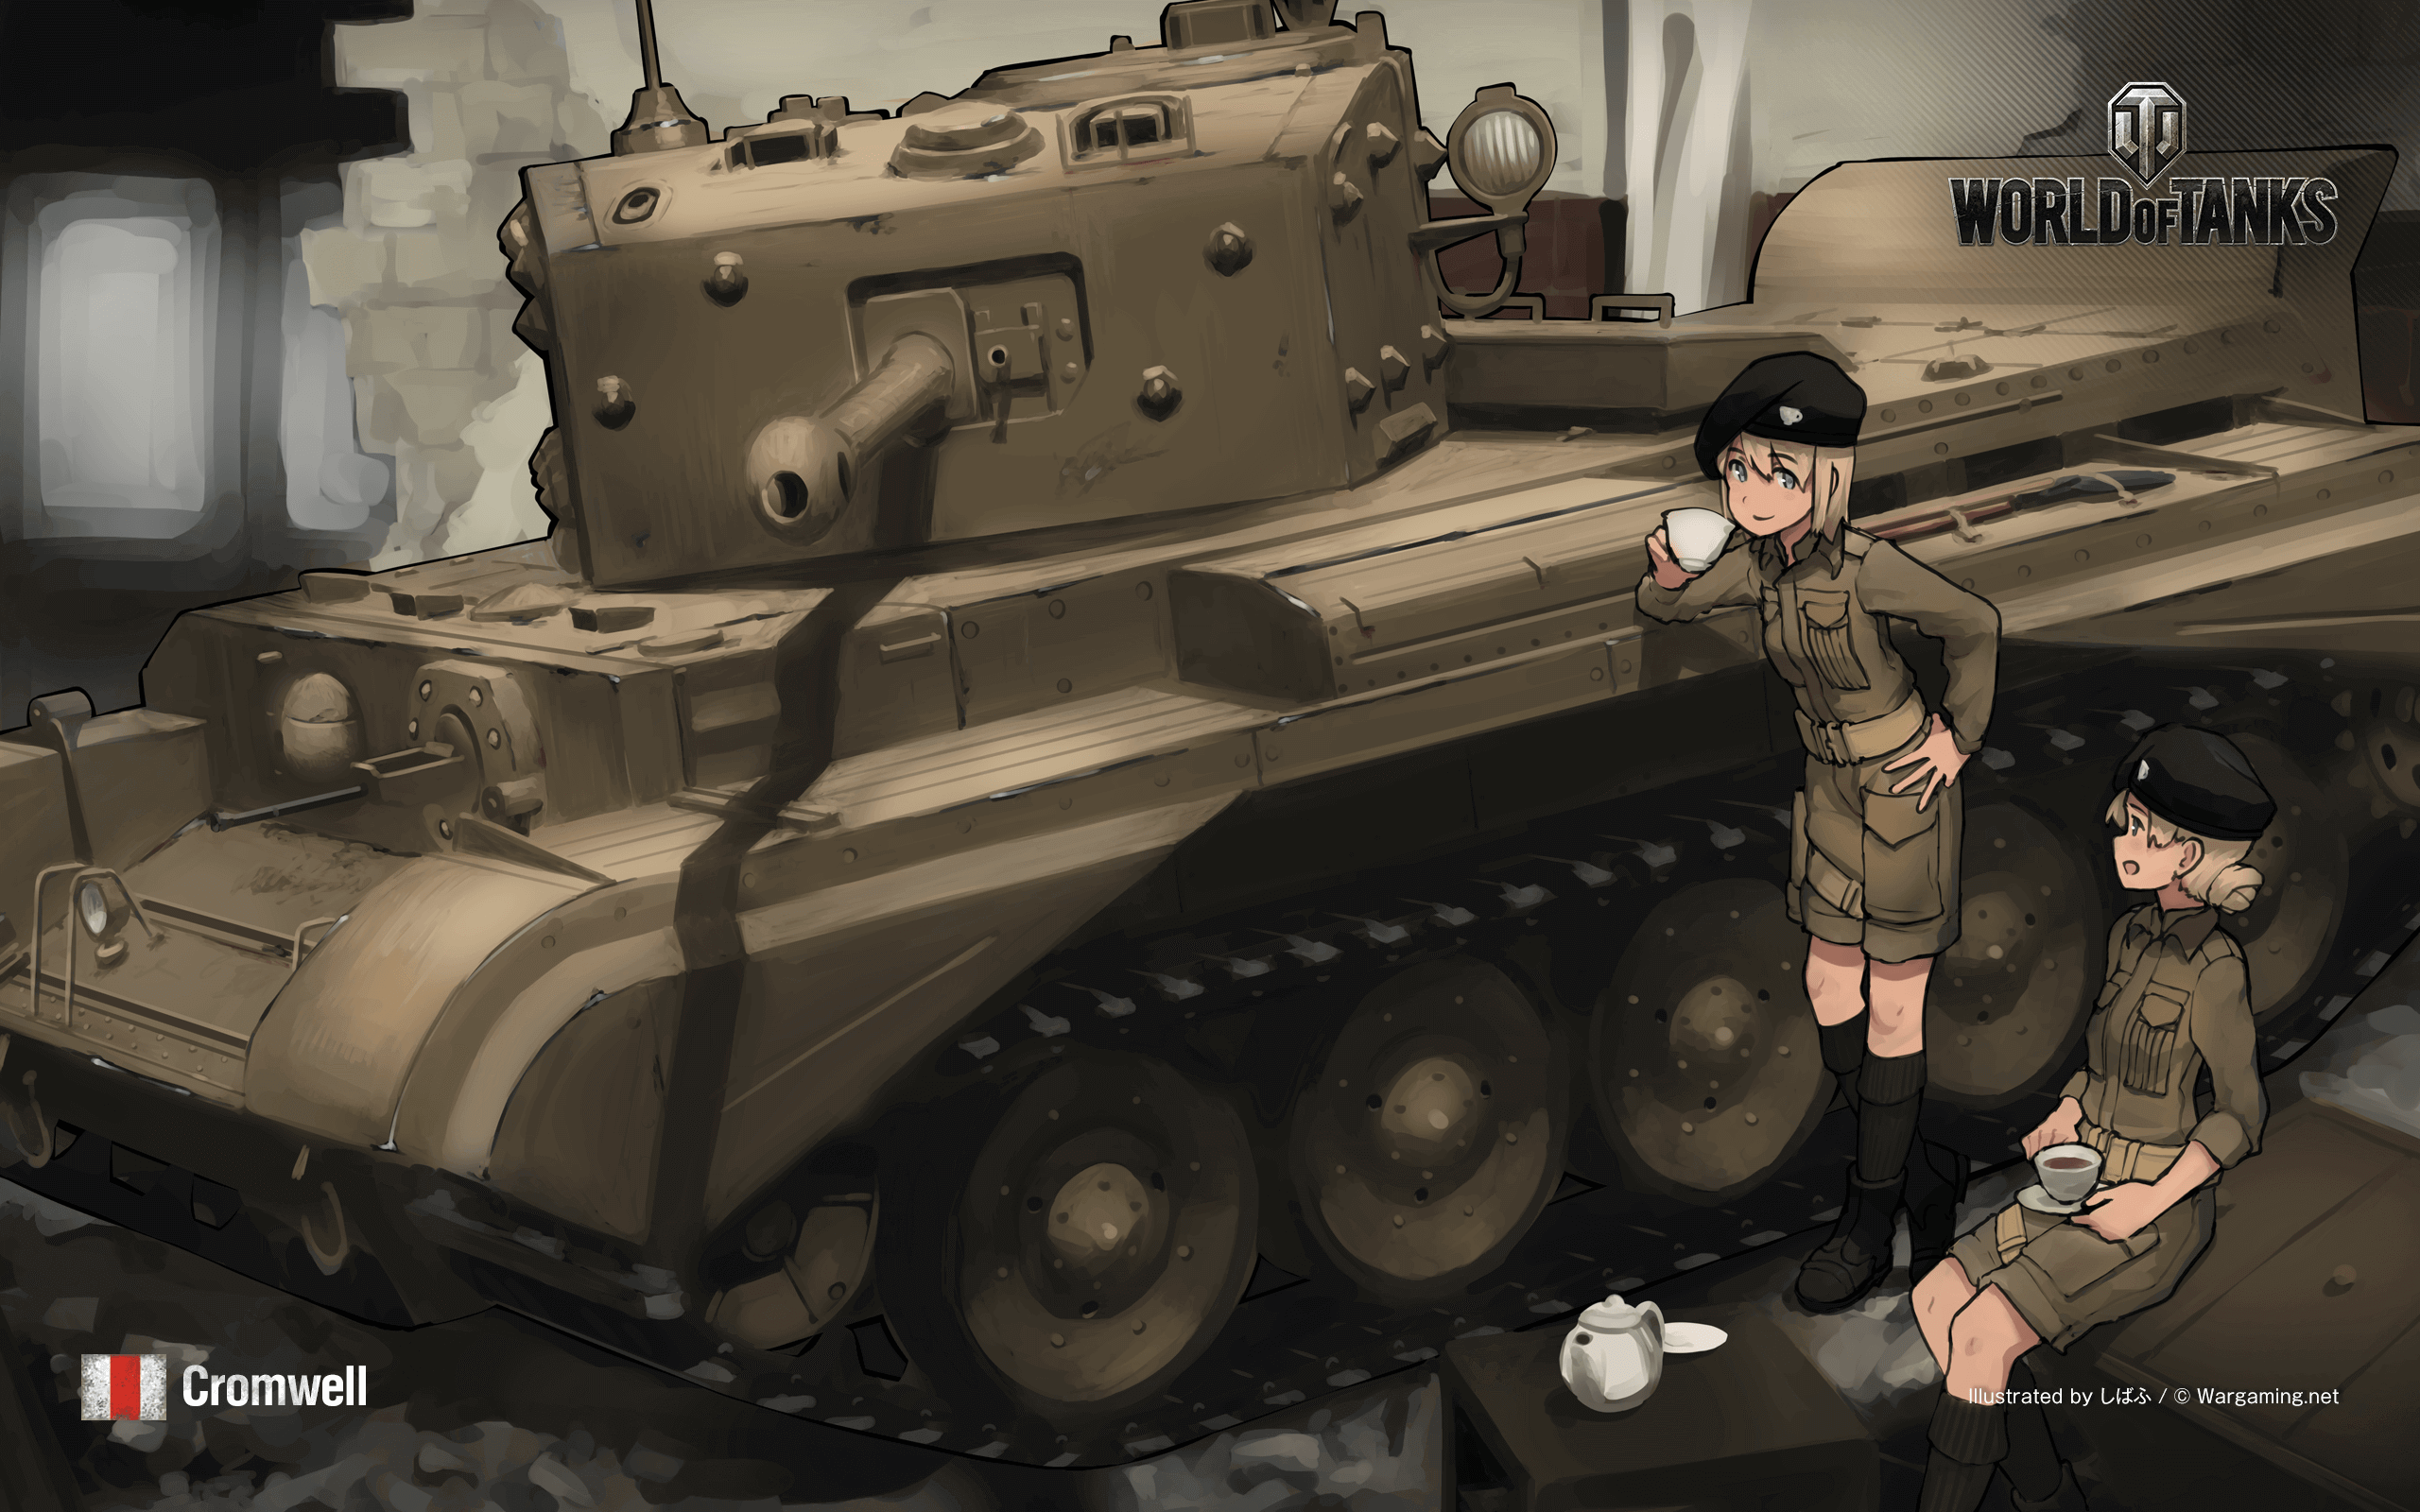 wot/wows anime wallpapers: montana, cromwell & t28 – the armored patrol